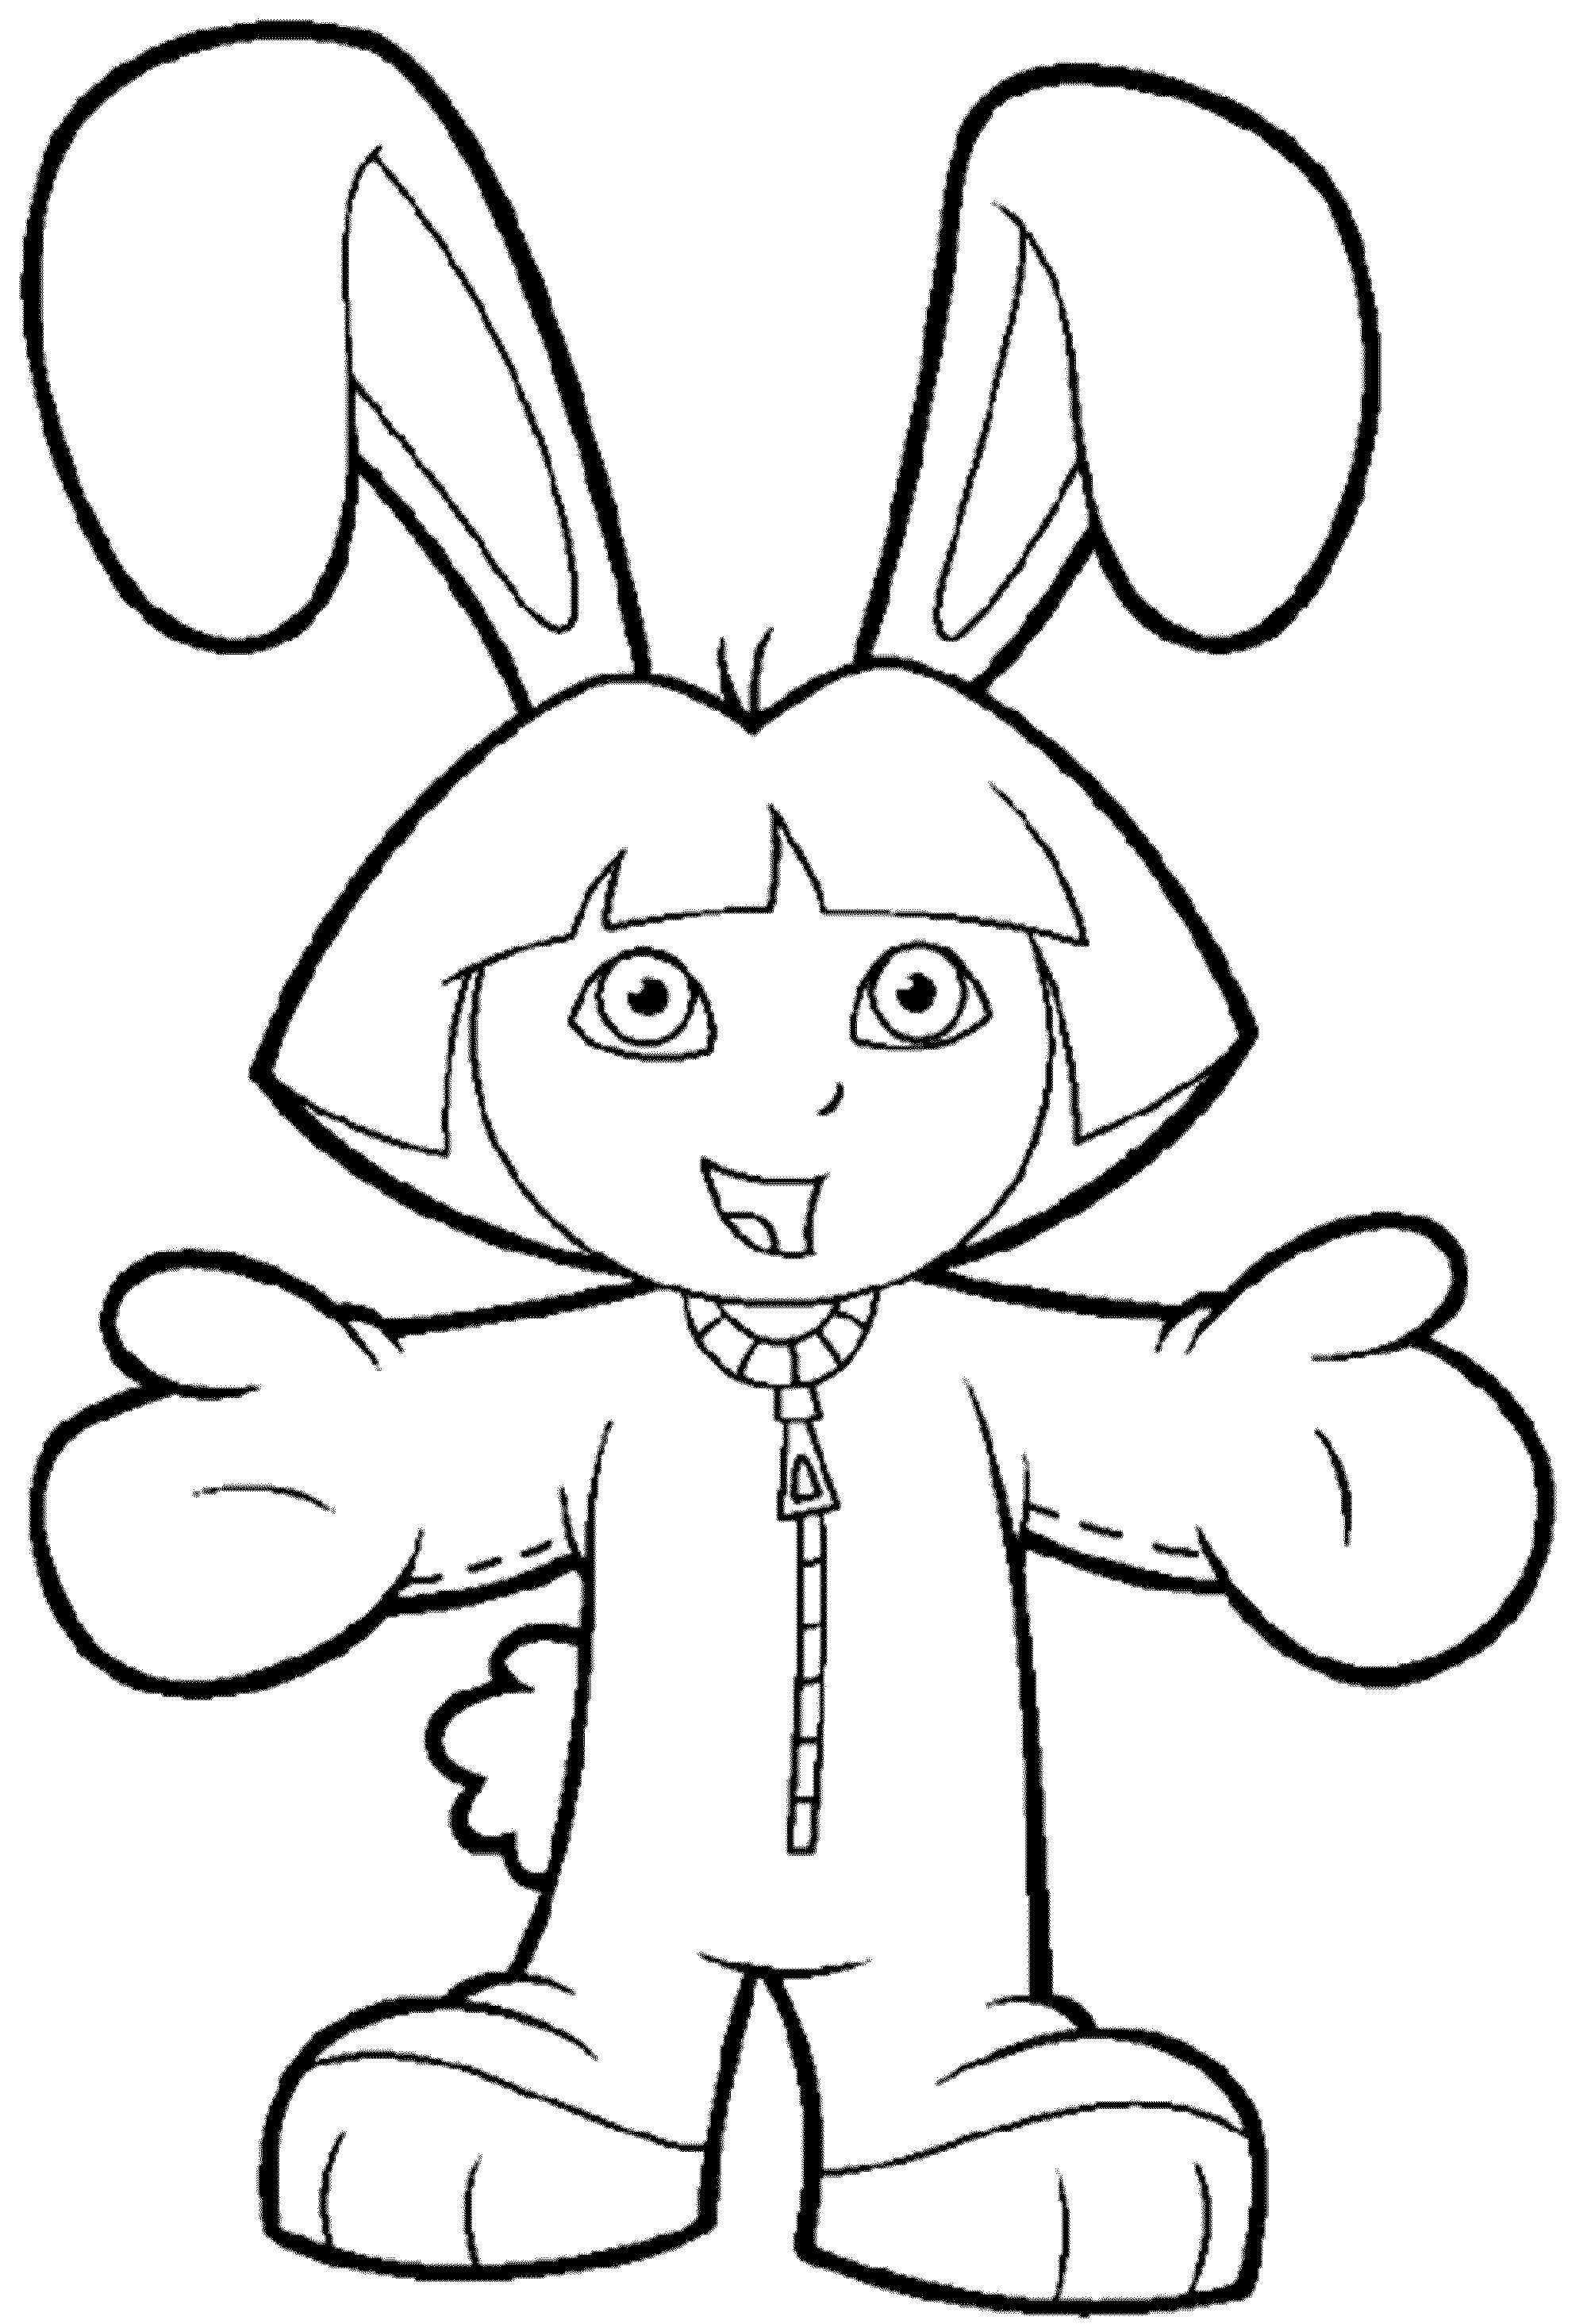 printable pictures of dora the explorer dora the explorer coloring pages download and print dora printable pictures the of dora explorer